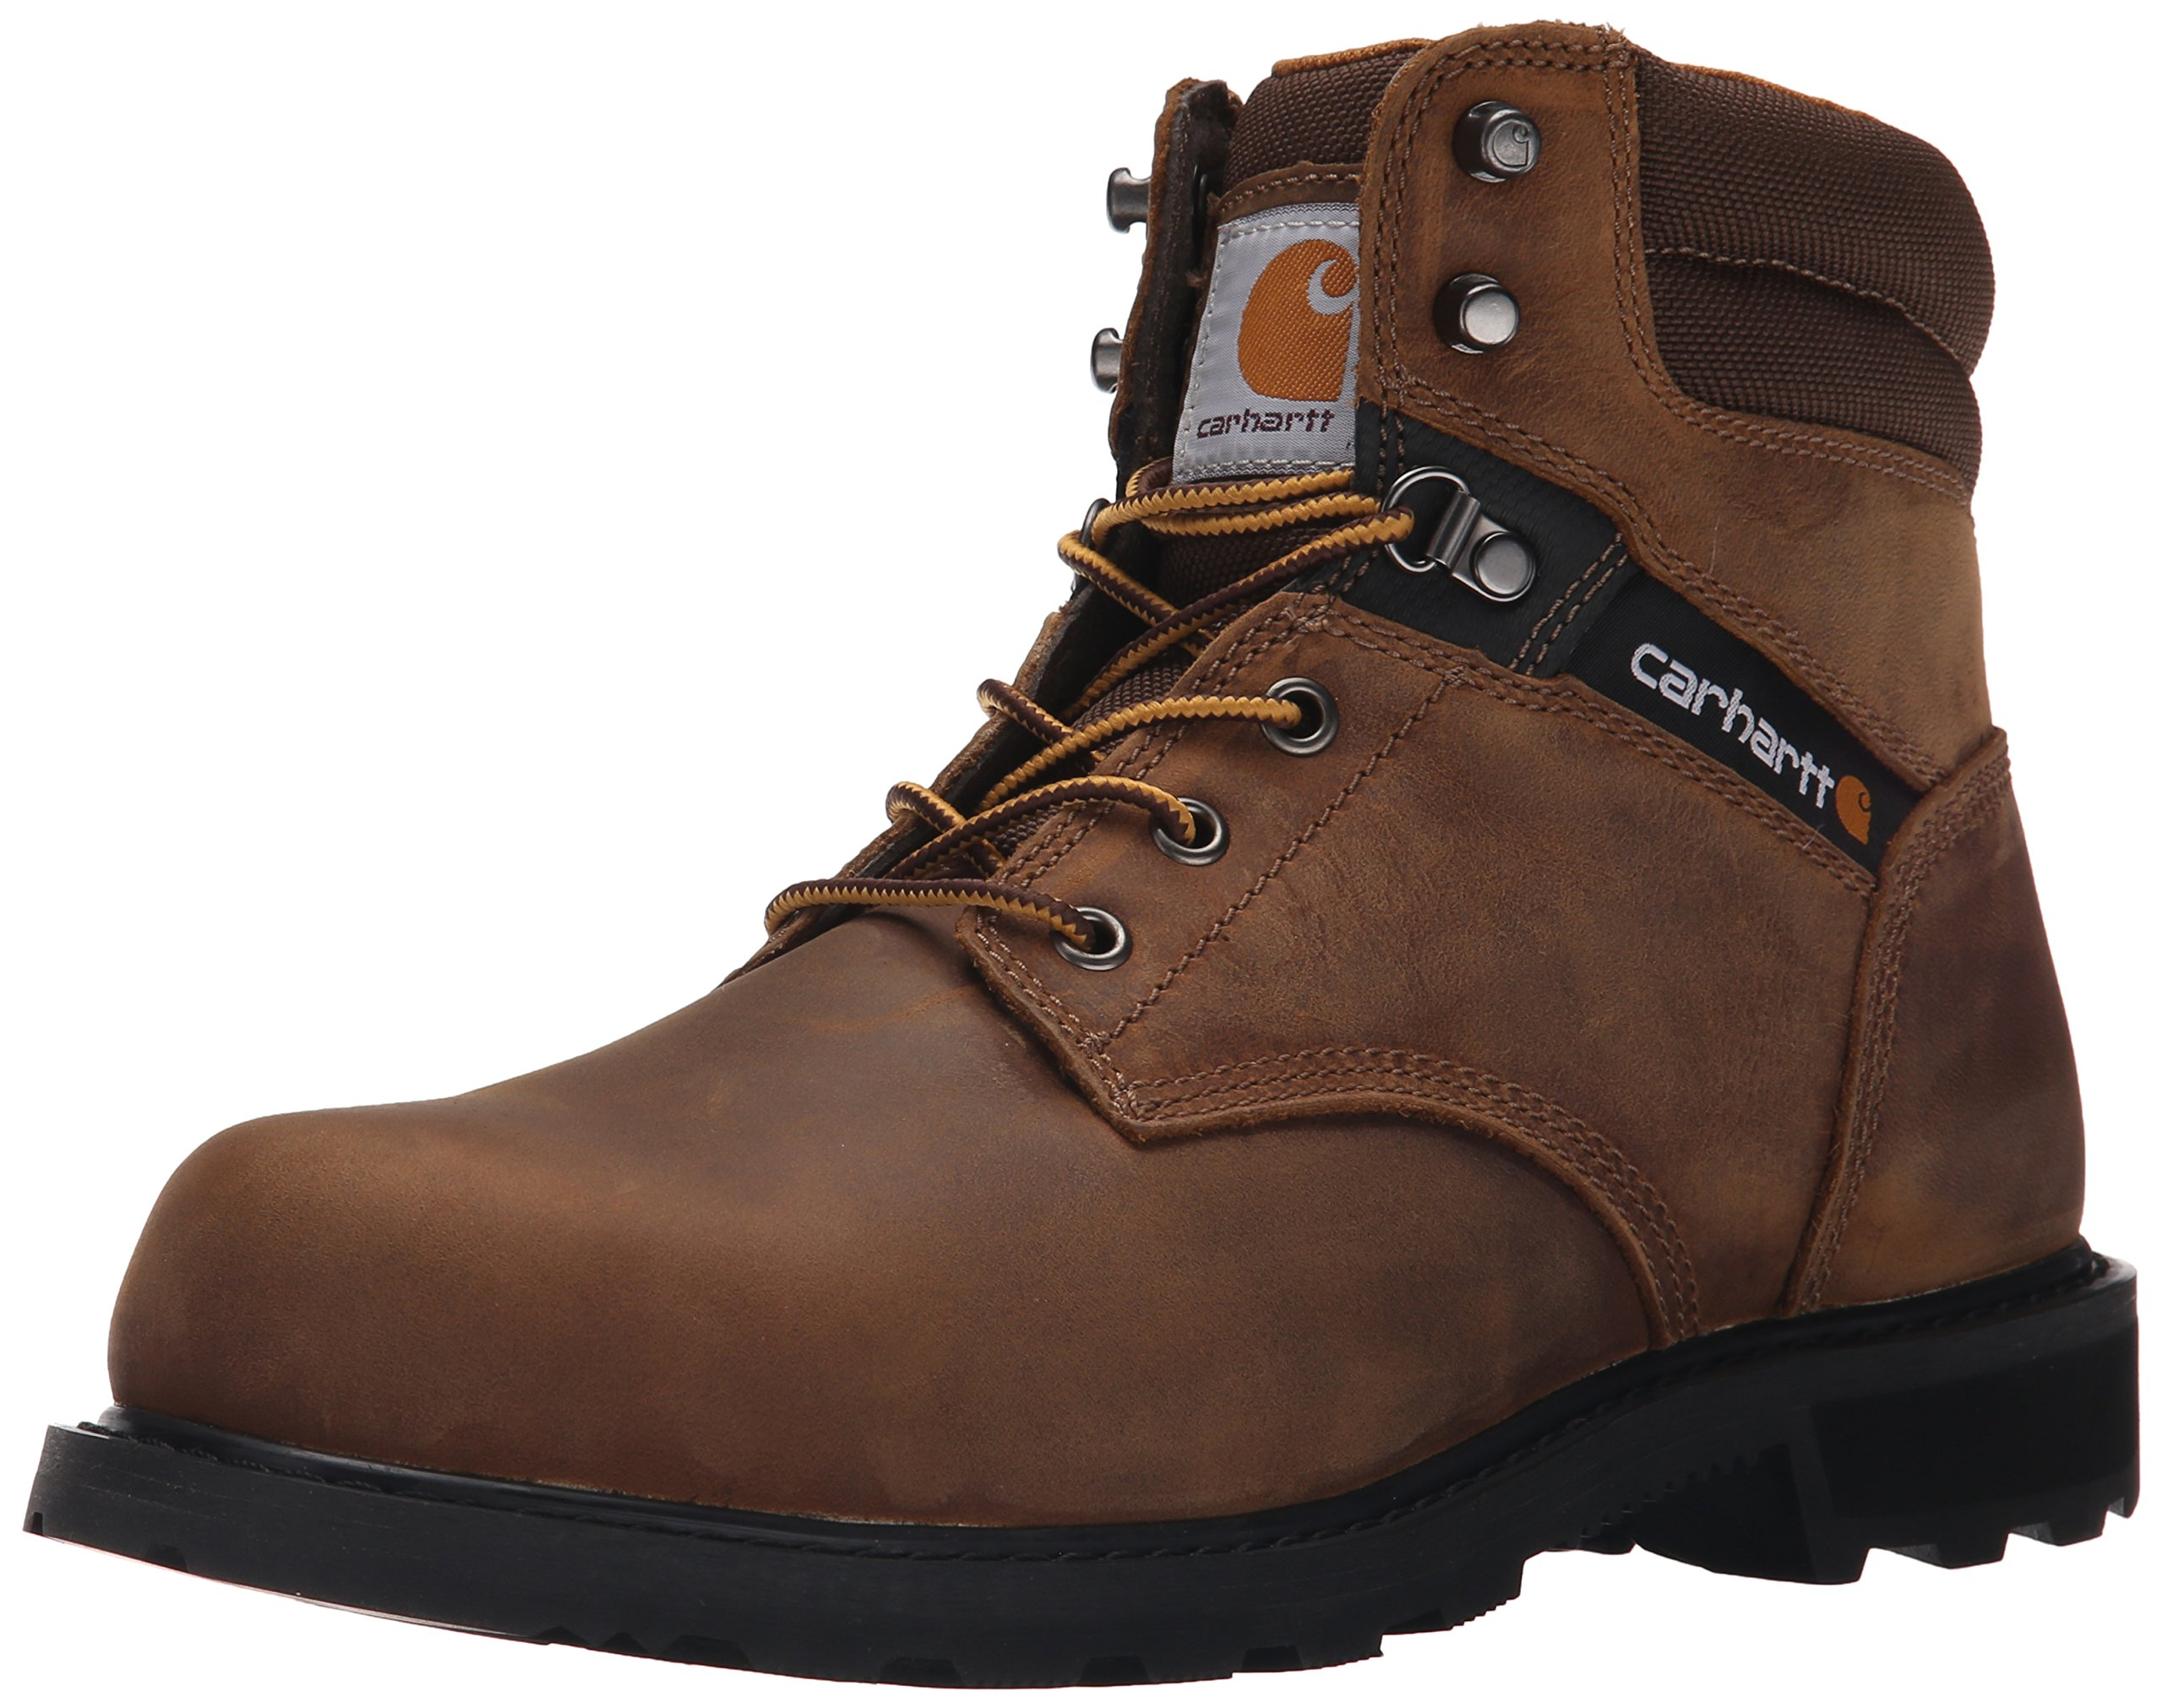 Carhartt Men's 6 Work Safety Toe NWP Work Boot, Crazy Horse Brown Oil Tanned, 10.5 M US by Carhartt